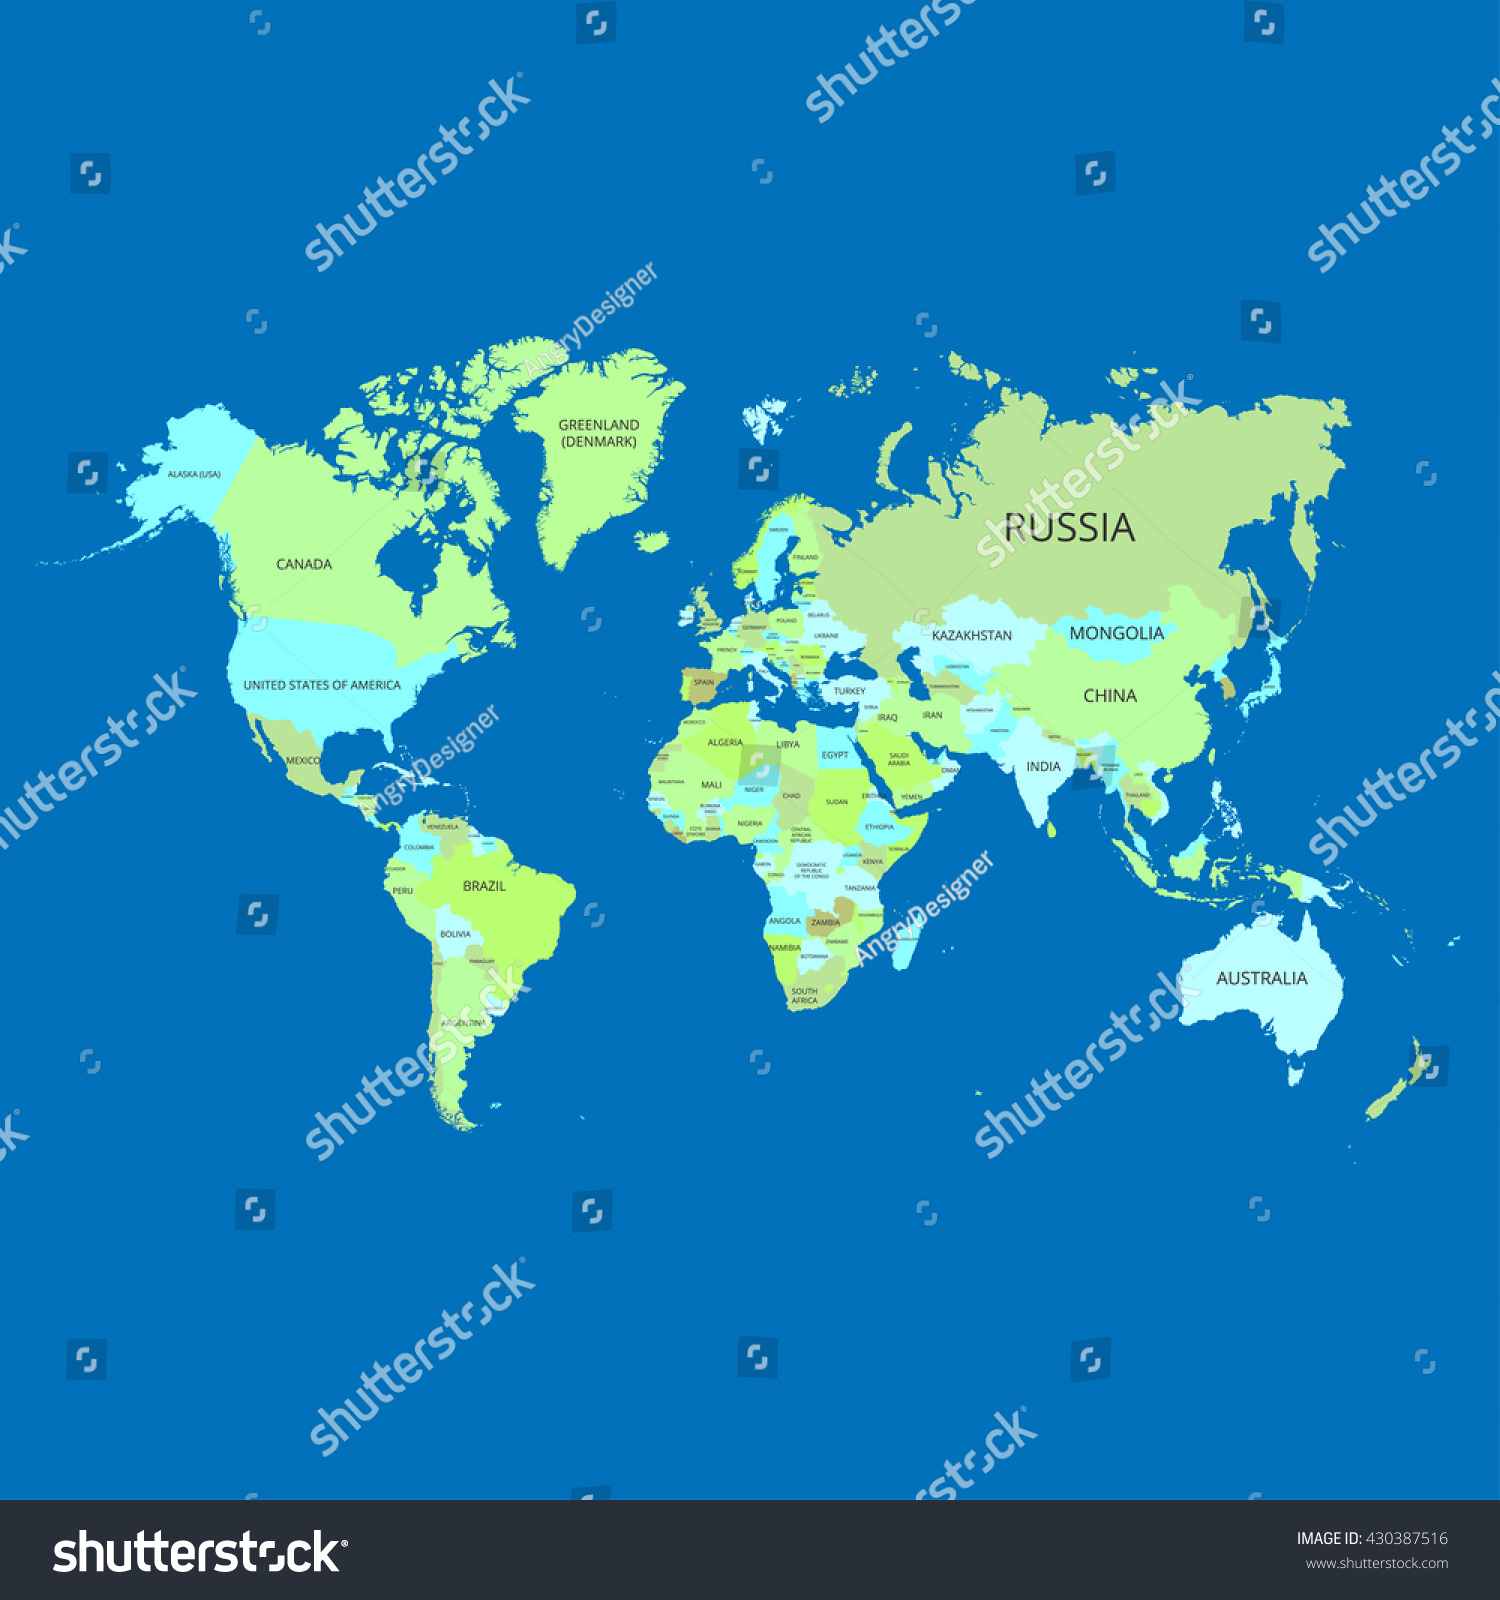 World Map Names Countries Vector Illustration Stock Vector - Earth map with country names